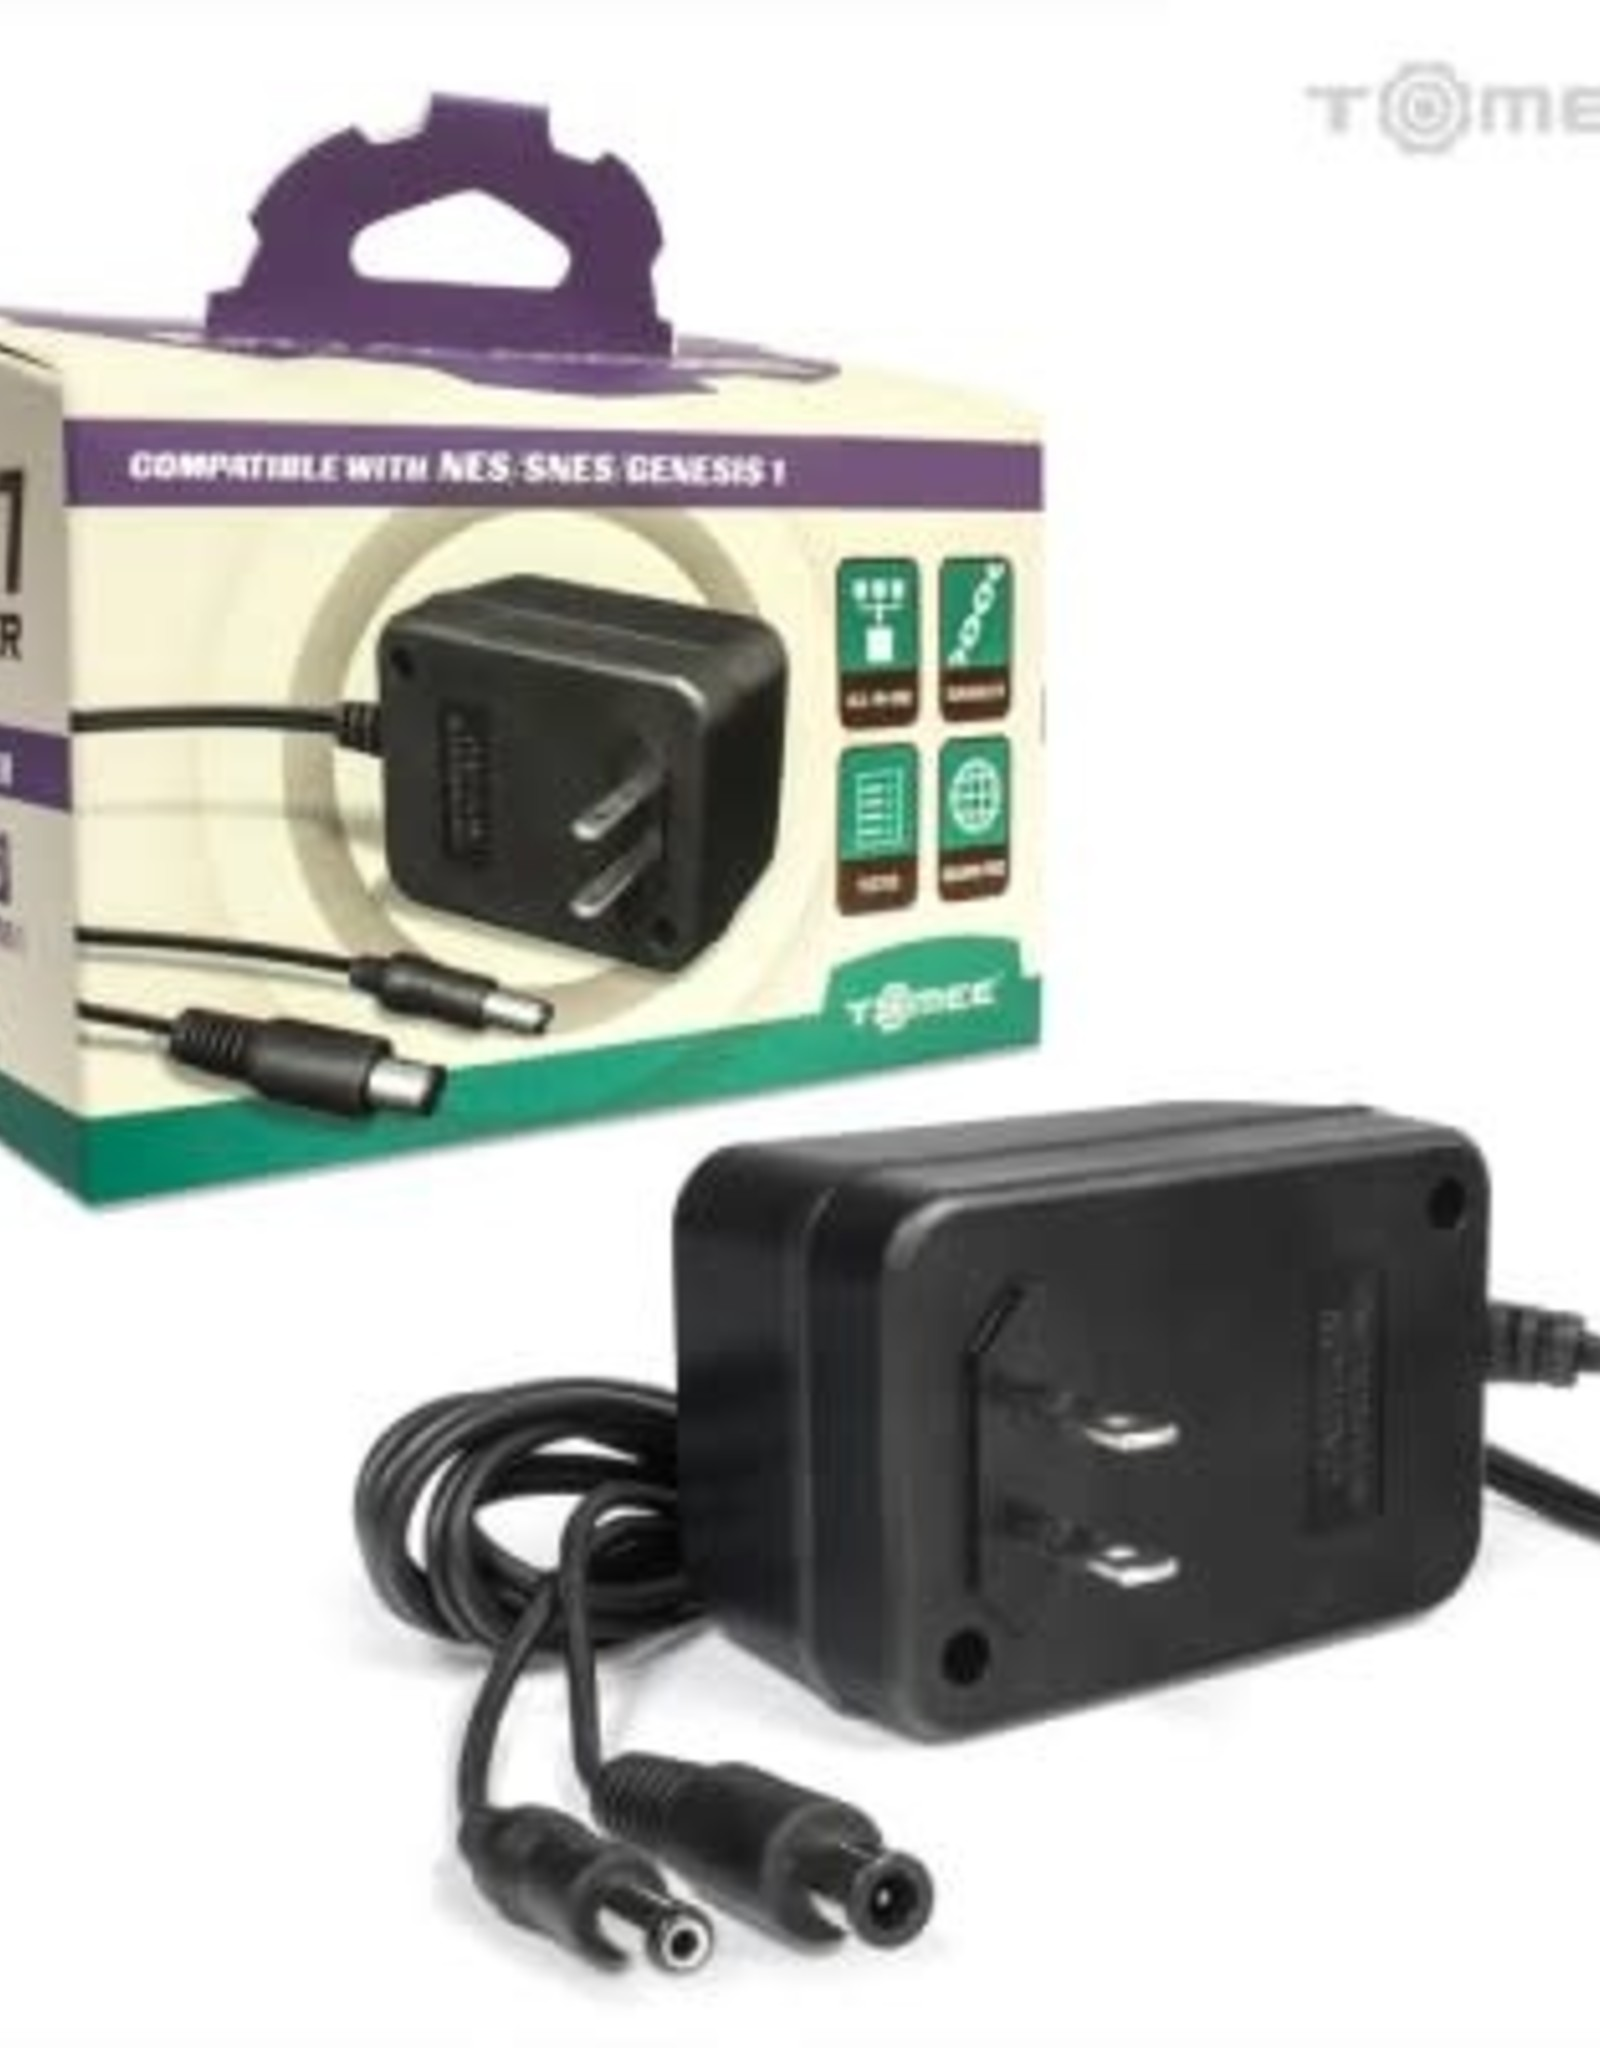 Tomee 3 in 1 AC Adapter for Genesis/SNES/NES